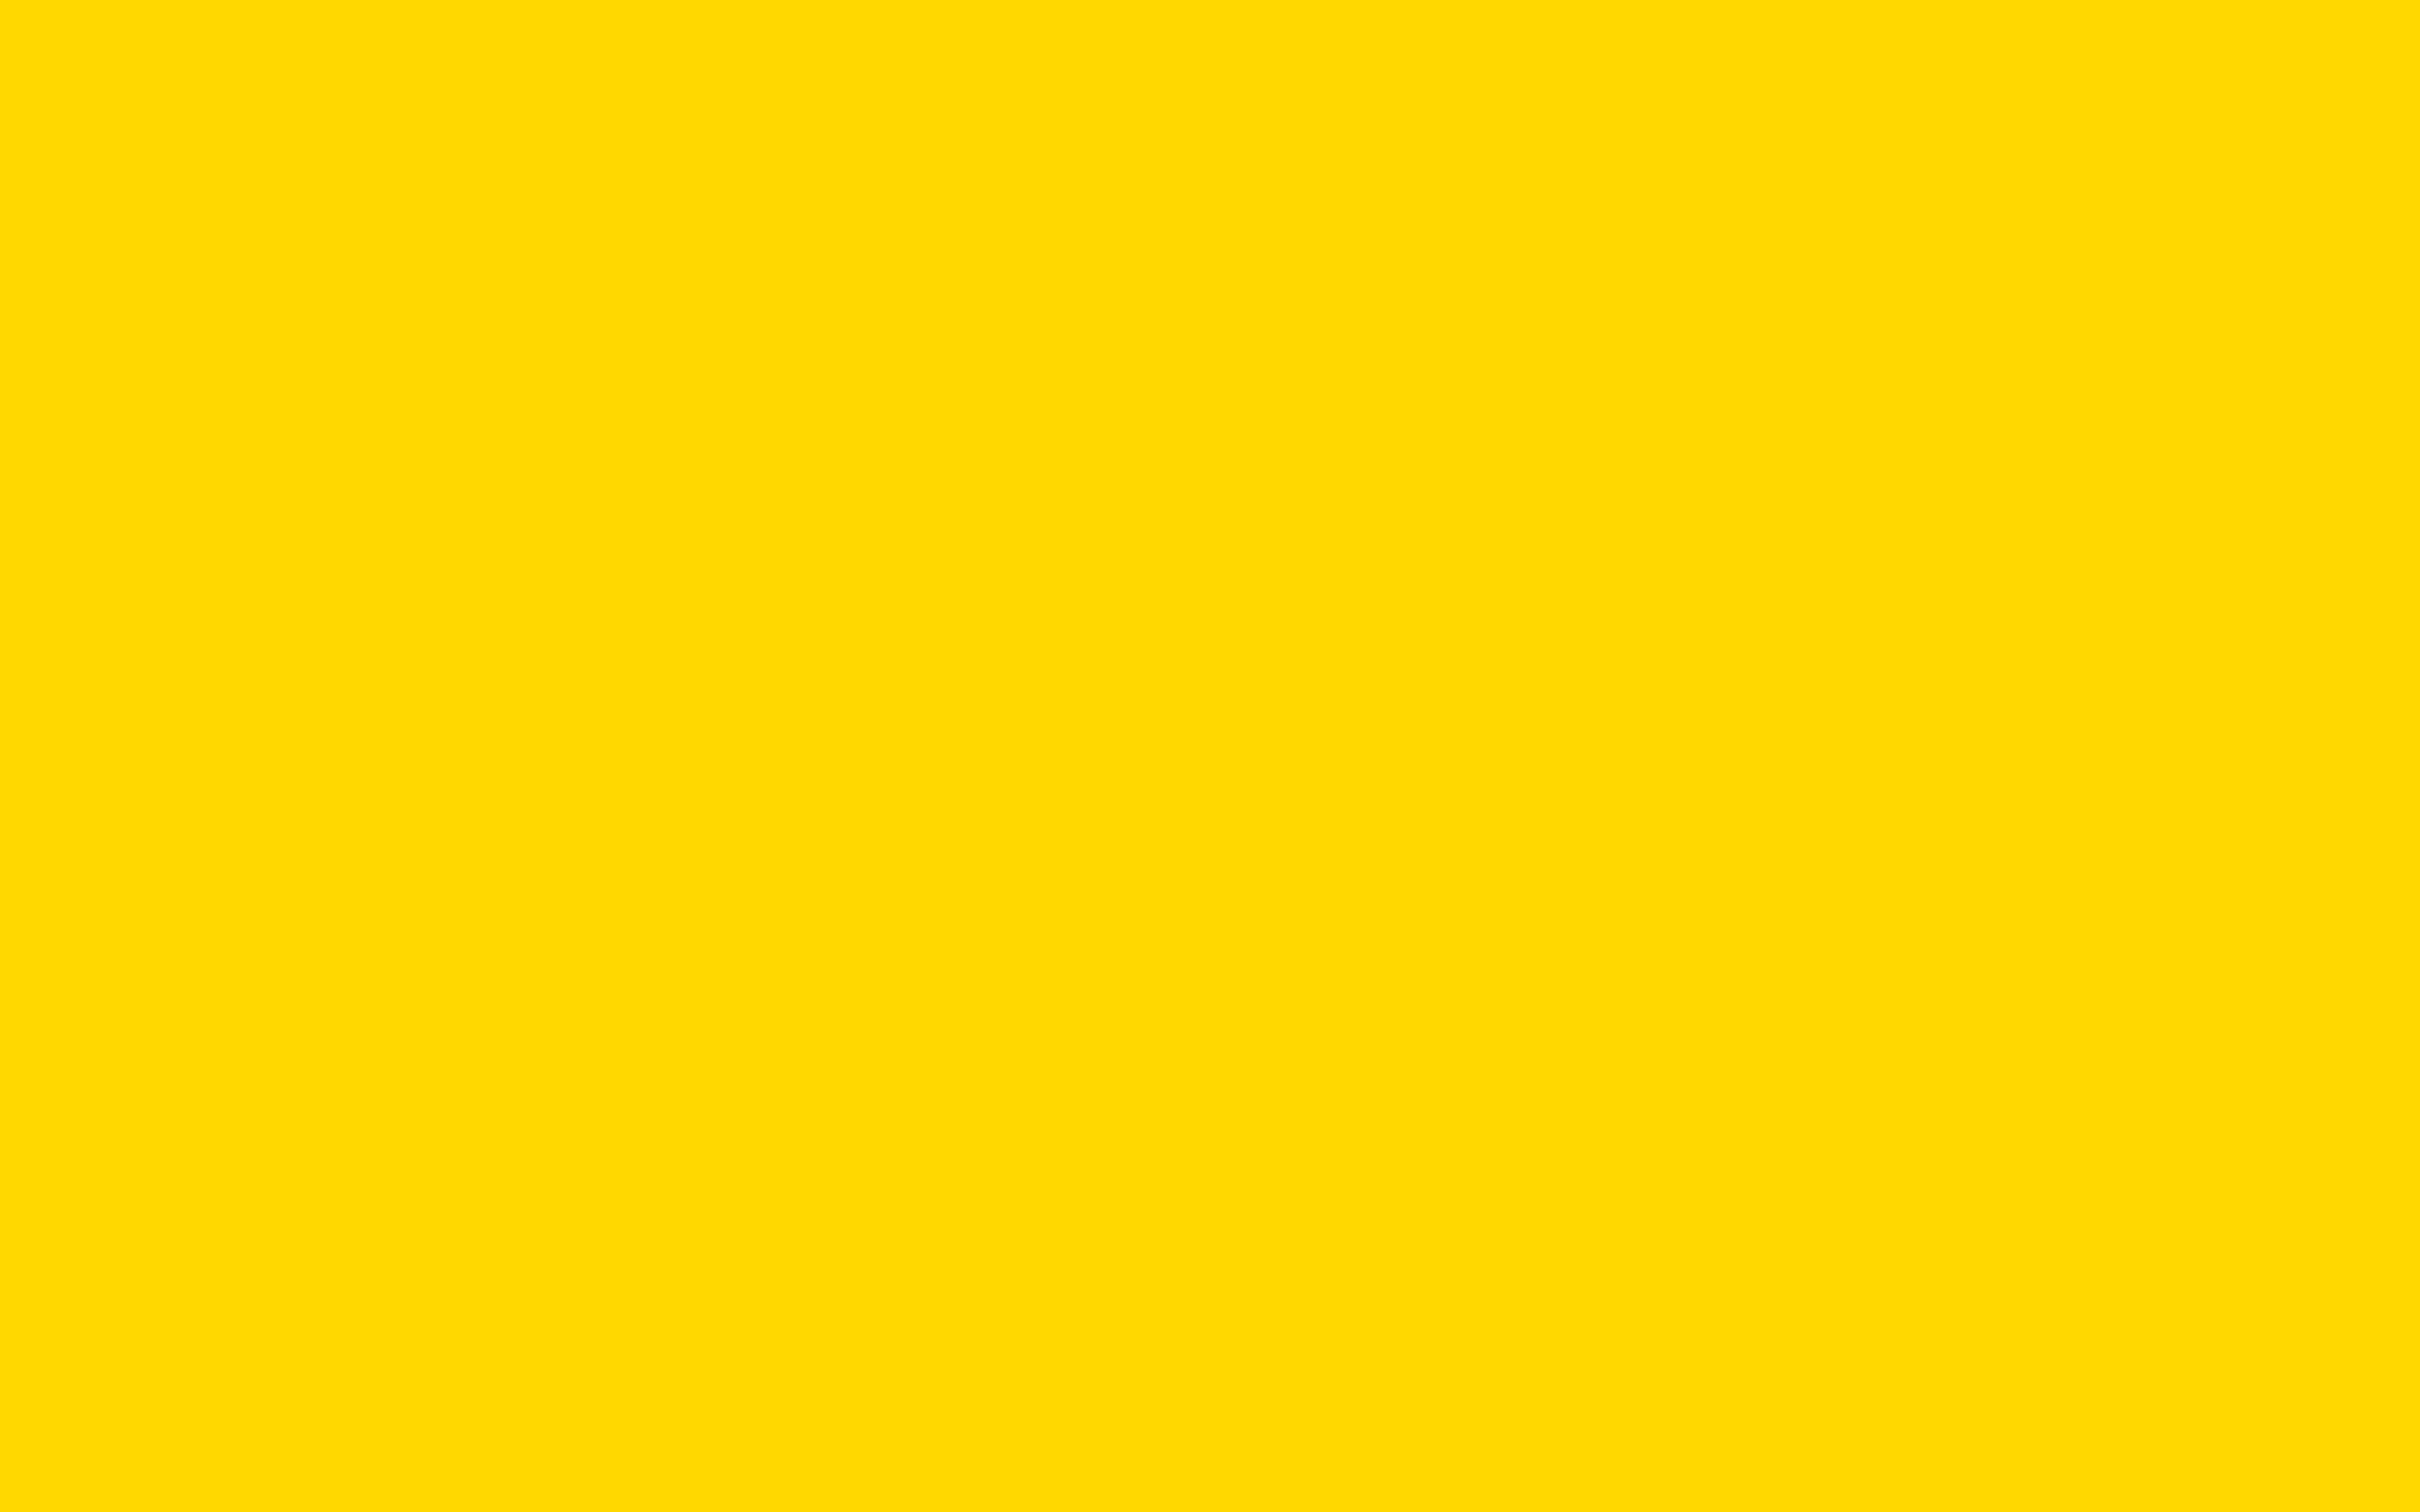 2560x1600 School Bus Yellow Solid Color Background